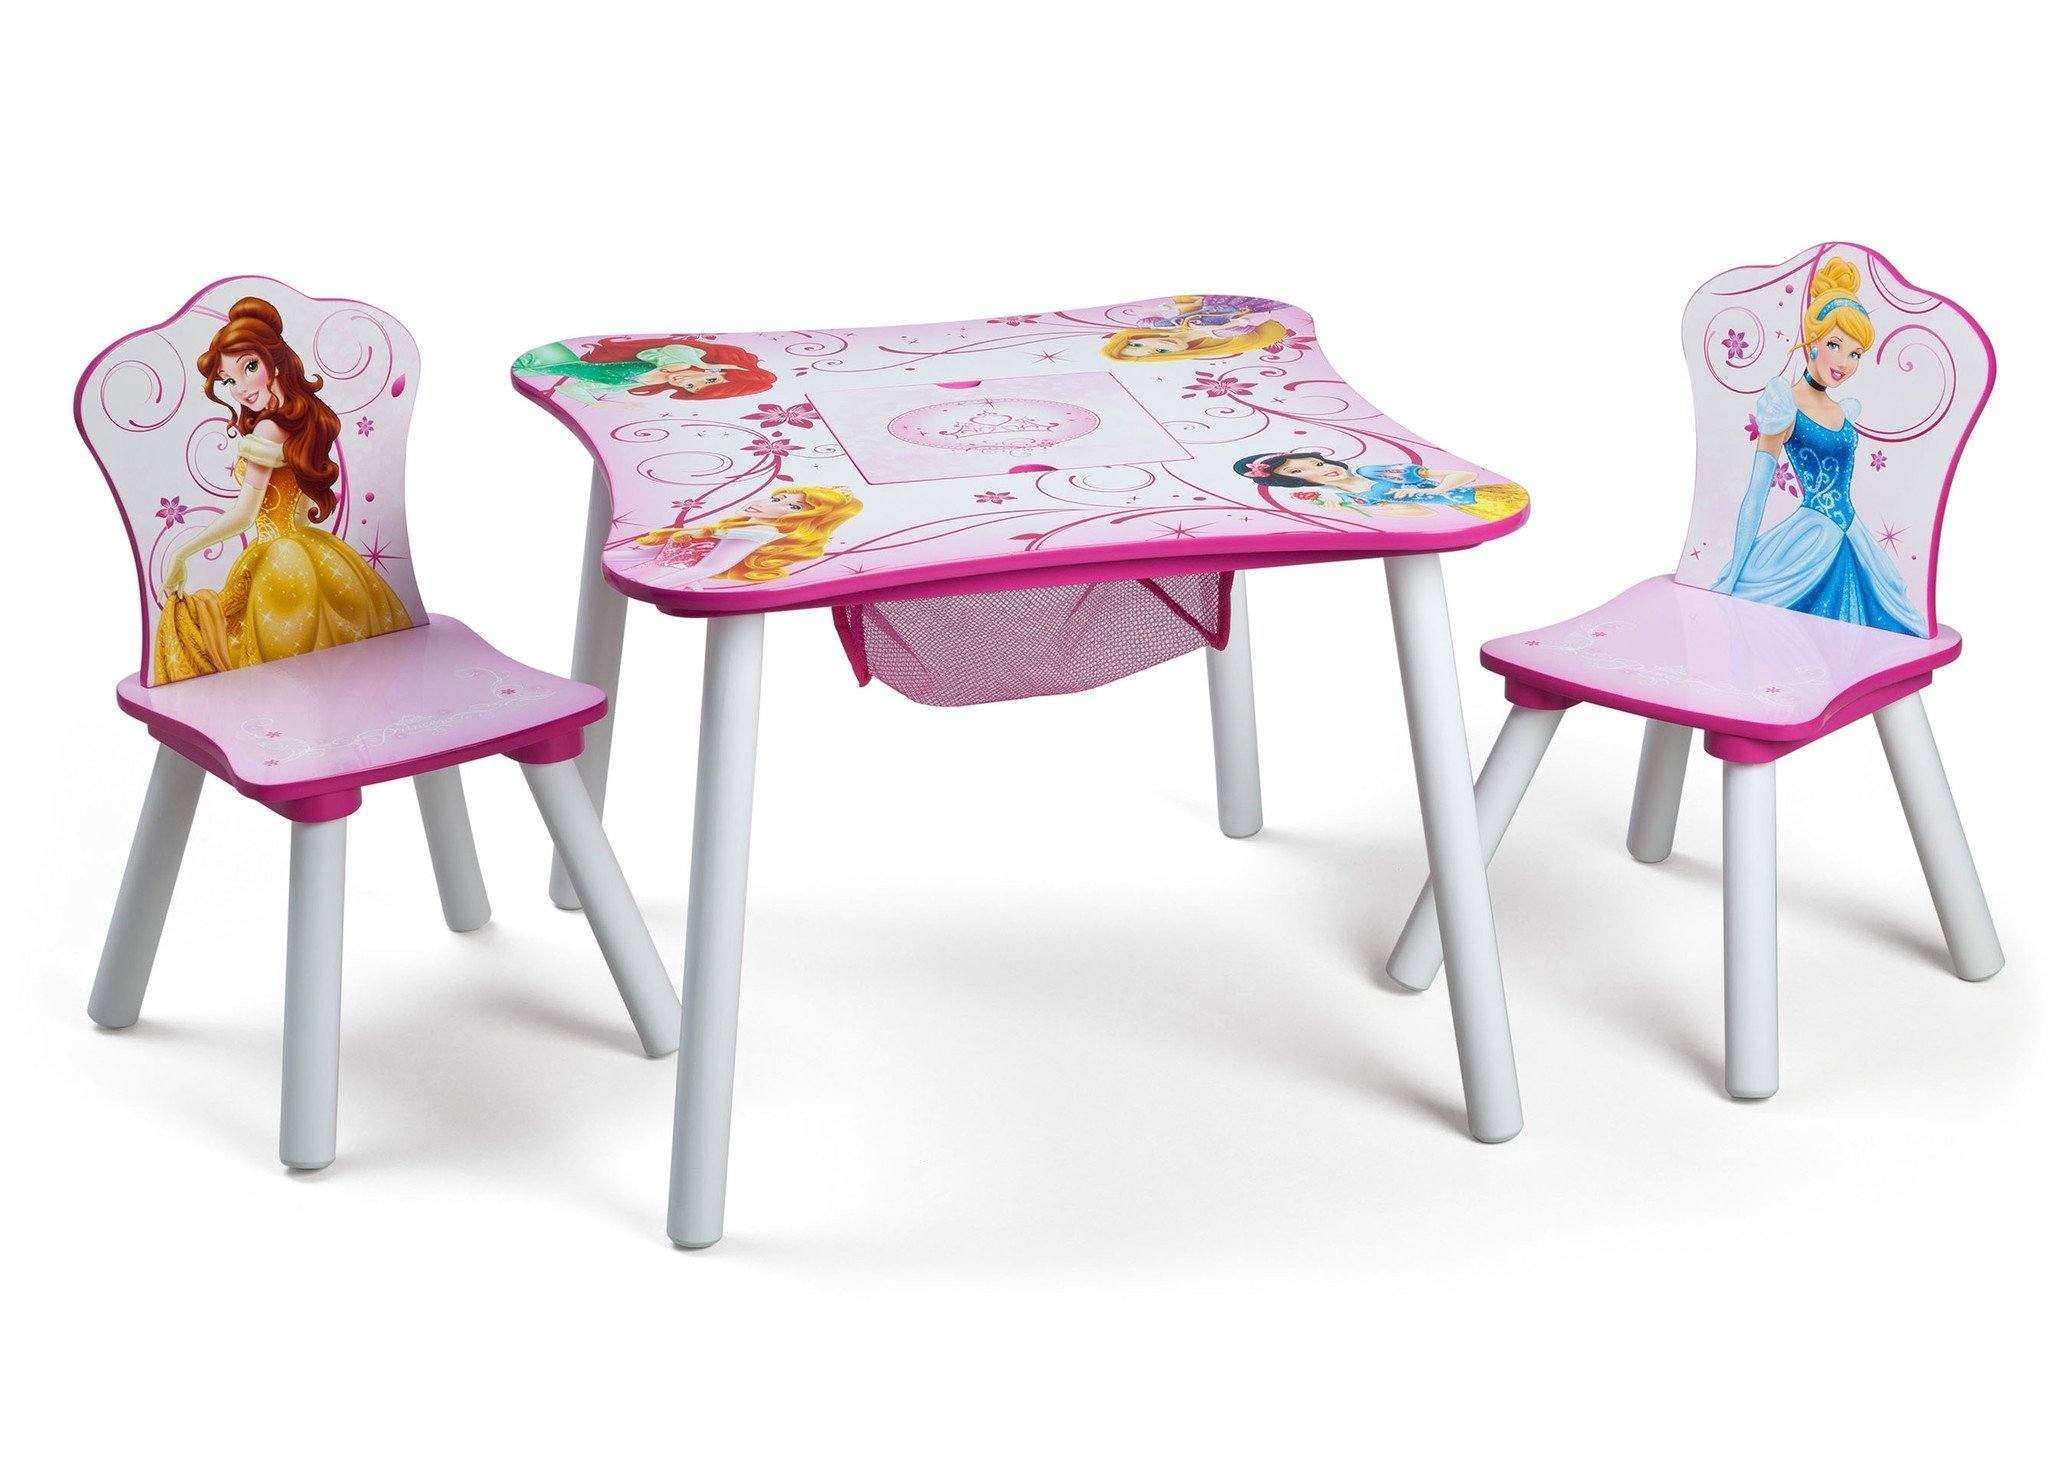 Disney Princess Storage Table And Chairs Set Only $39.99, Down From $75!